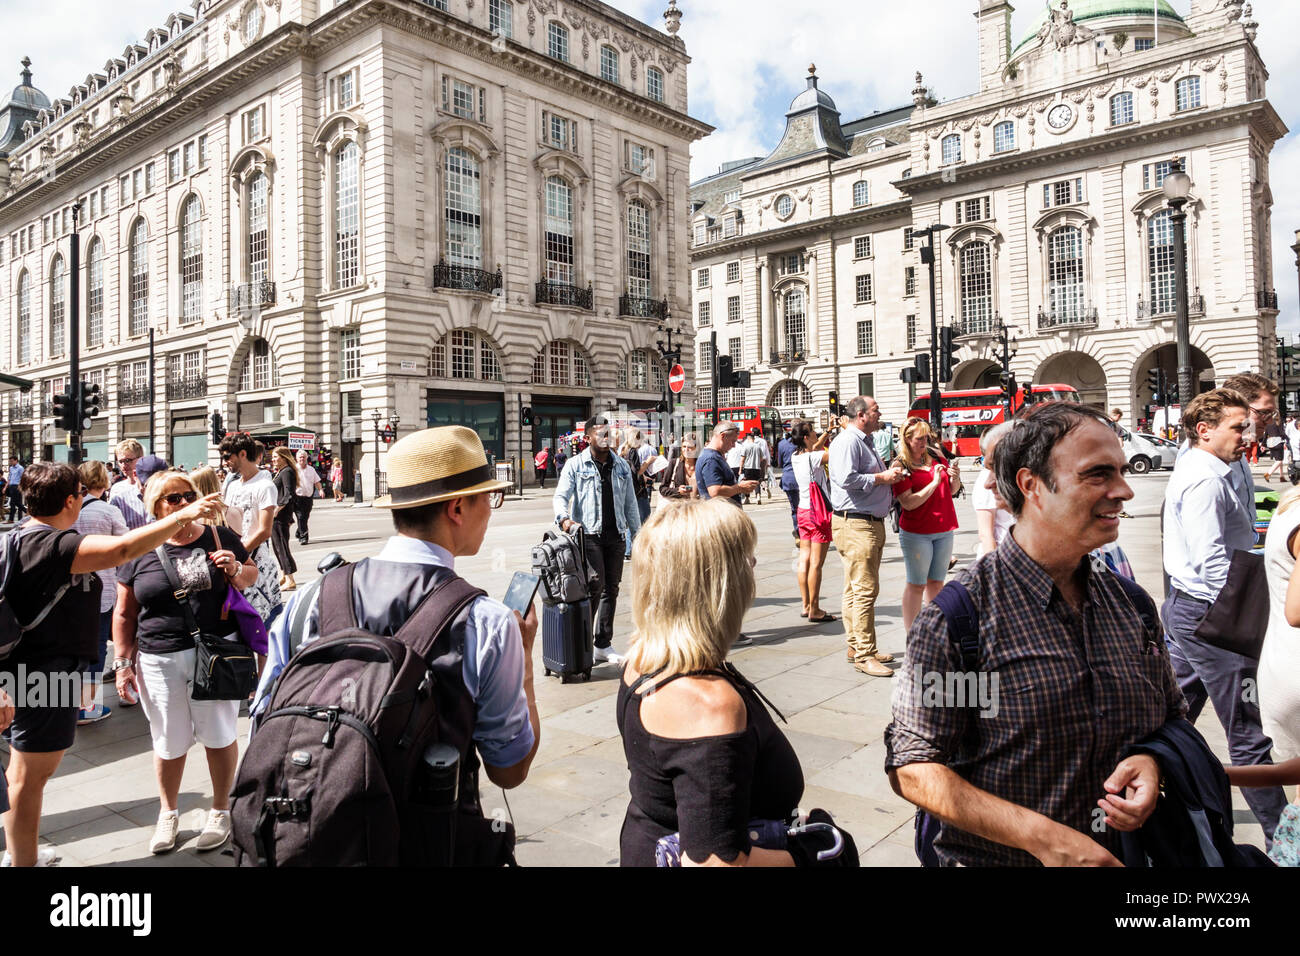 London England United Kingdom Great Britain West End Piccadilly Circus St. James's public space plaza Asian Black man woman crowd Swan & Edgar buildin - Stock Image